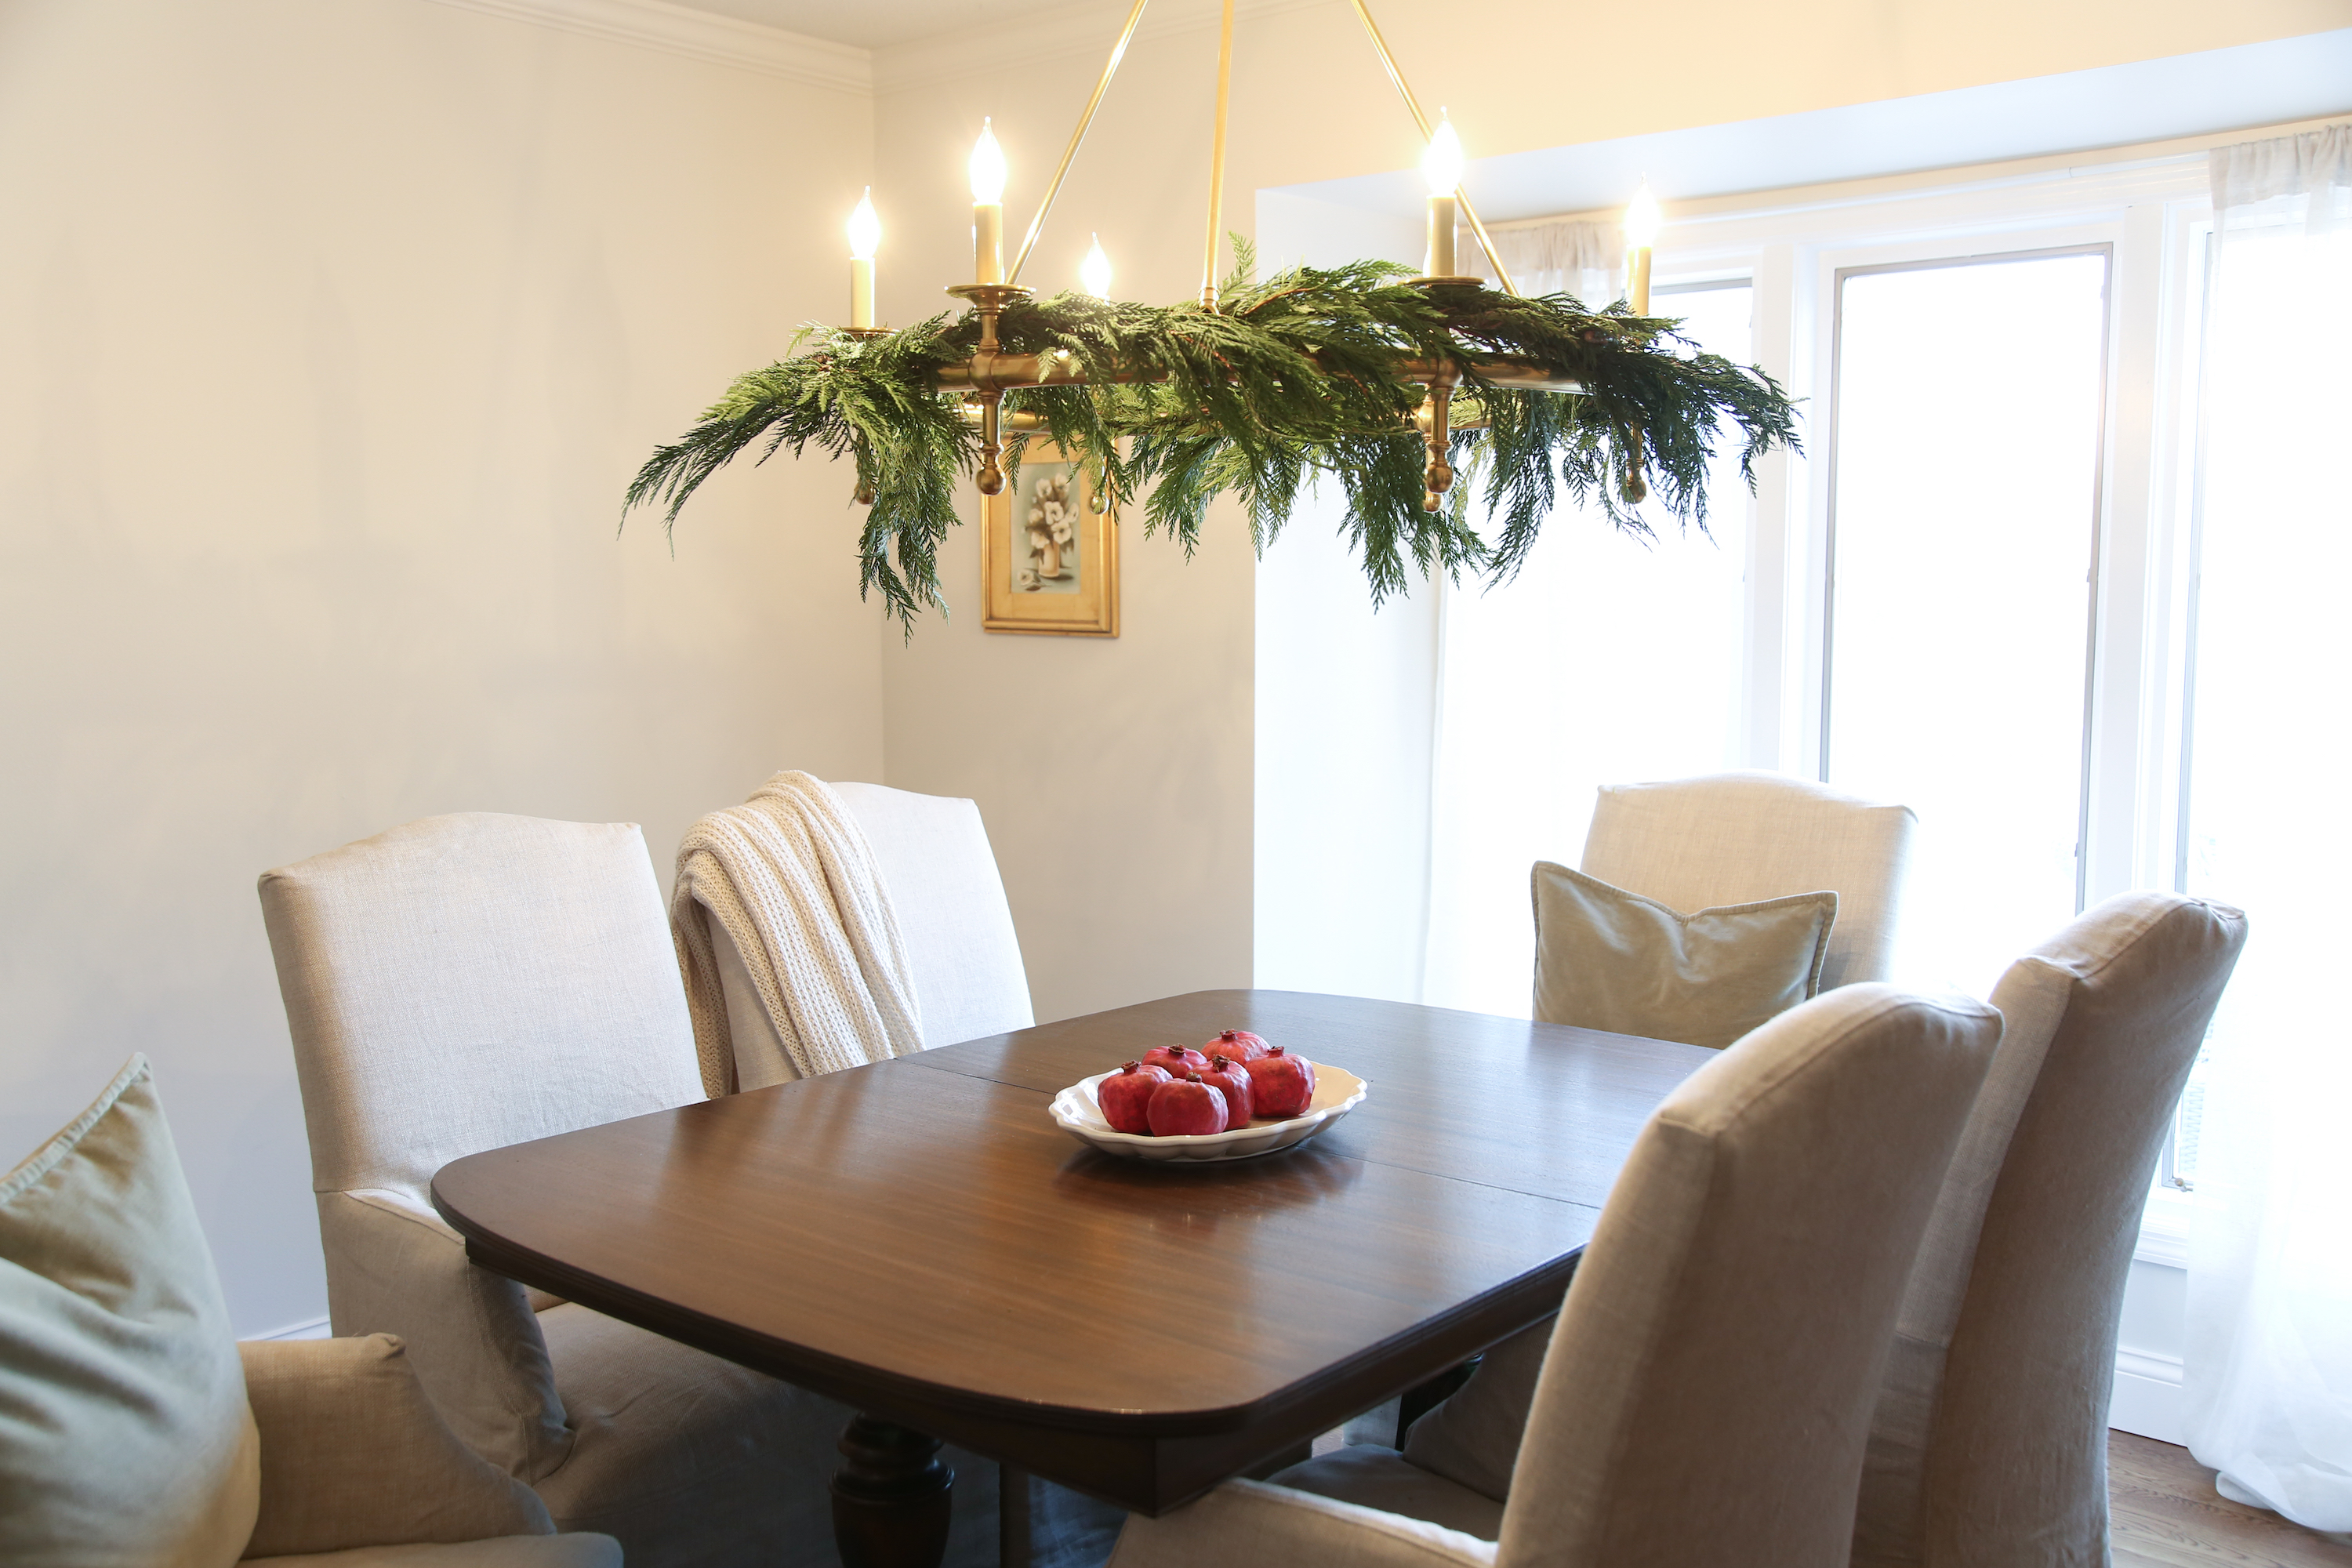 12 Tips for Decorating Your Small Apartment for Christmas images 4